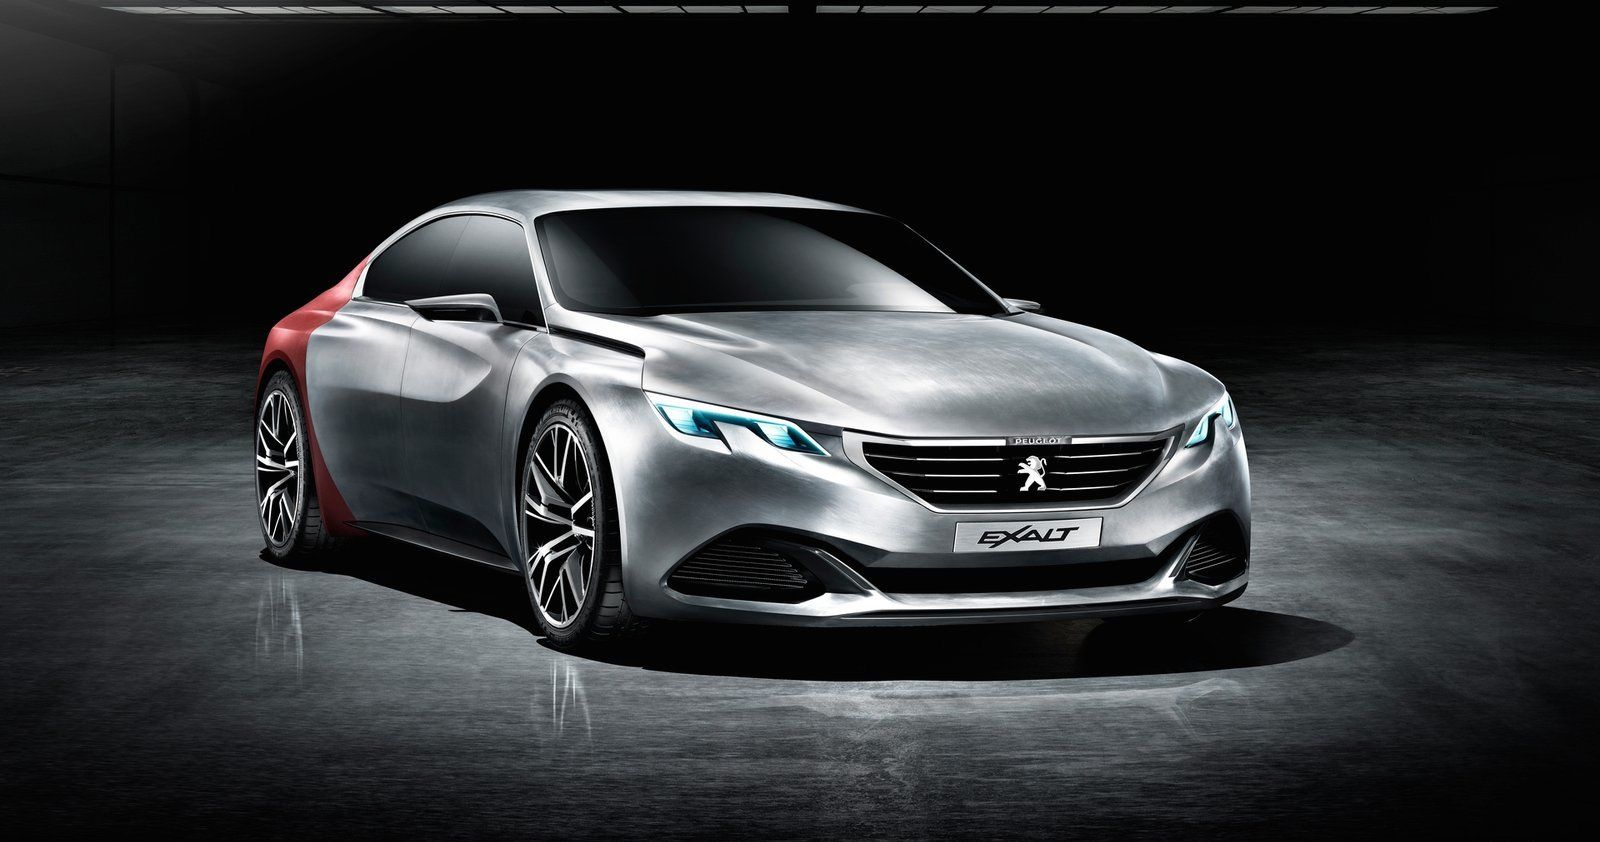 Peugeot Sport looks to plug-in hybrid tech for future performance models - report - http://www.caradvice.com.au/324226/peugeot-sport-looks-to-plug-in-hybrid-tech-for-future-performance-models-report/